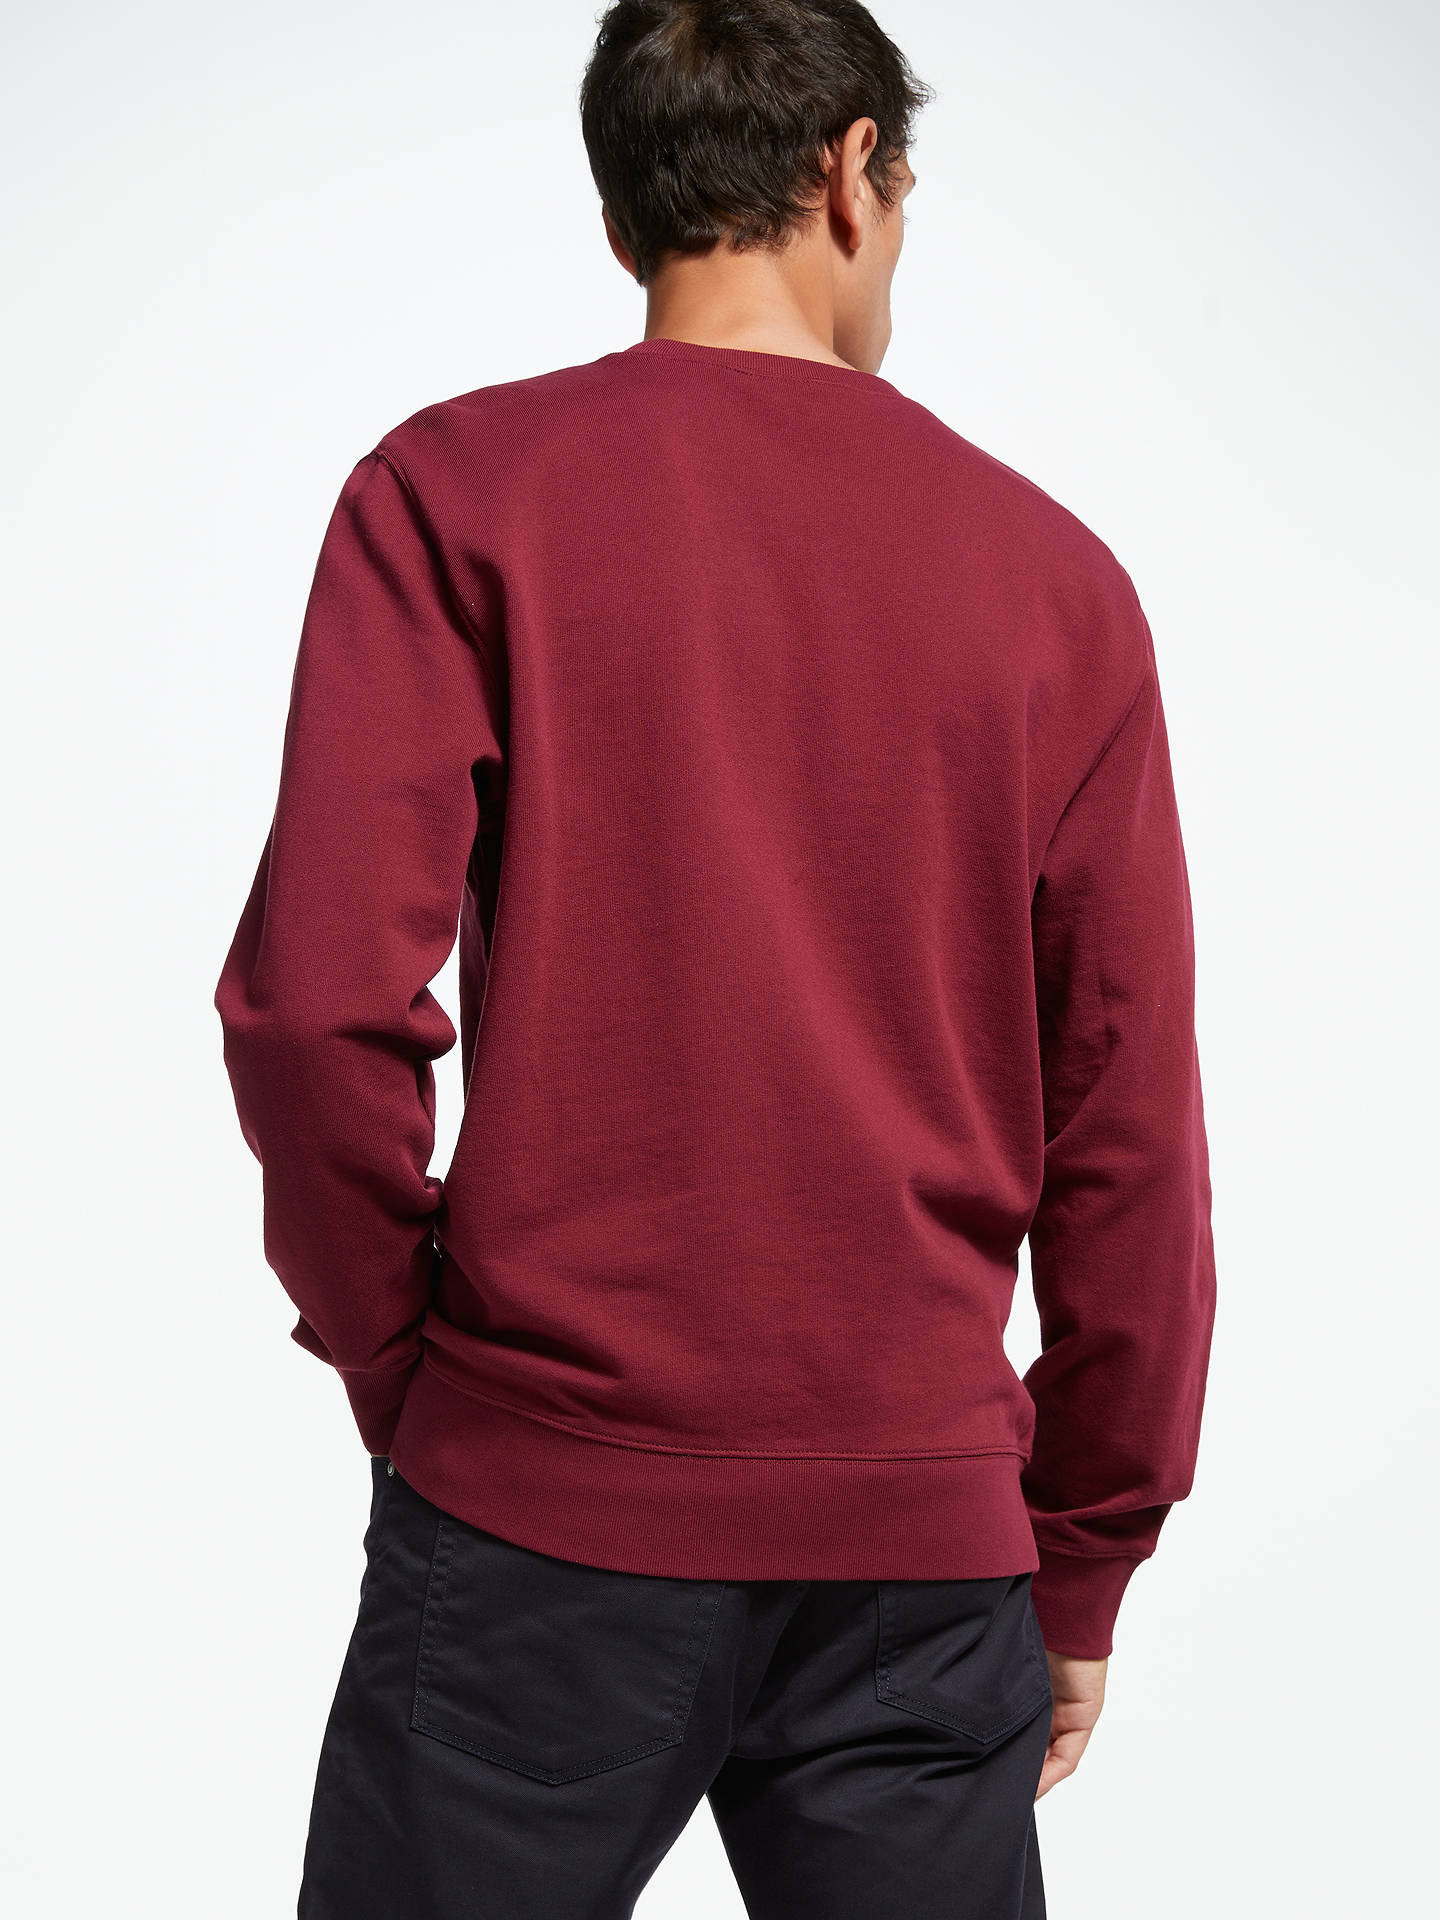 Buy Carhartt WIP College Sweatshirt, Mulberry, M Online at johnlewis.com